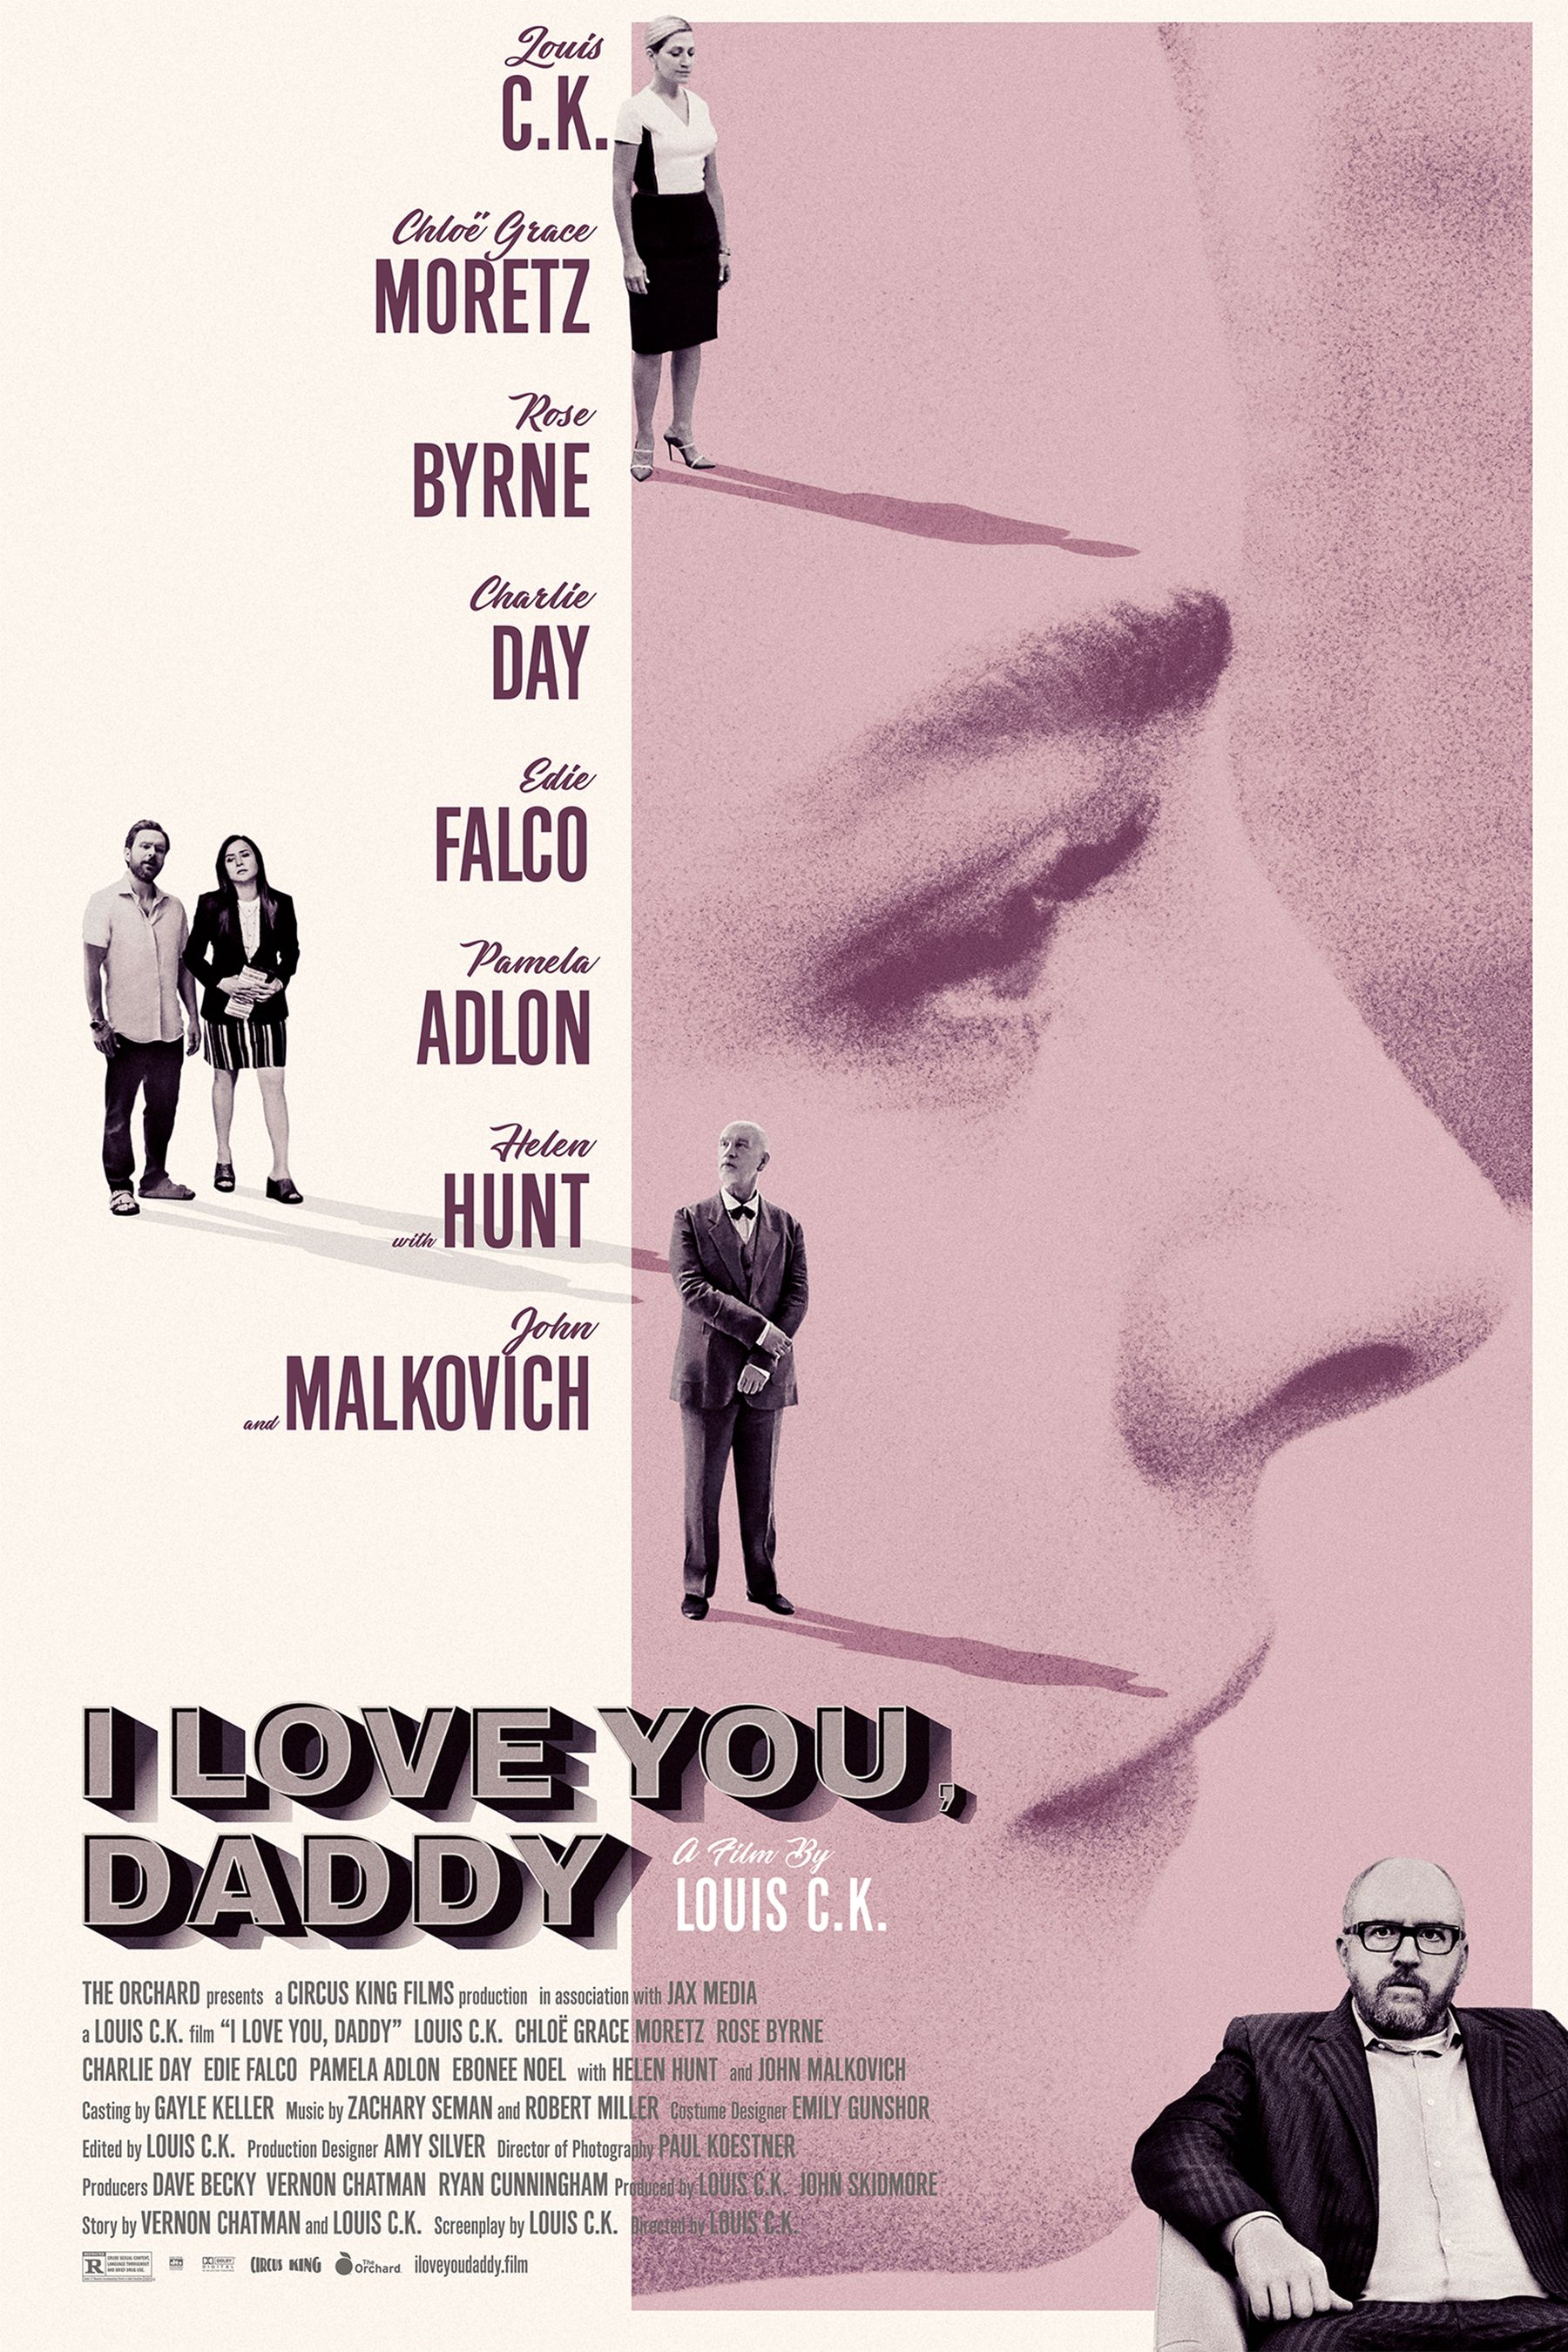 'I Love You Daddy' Official Poster Louis C.K. Chloe